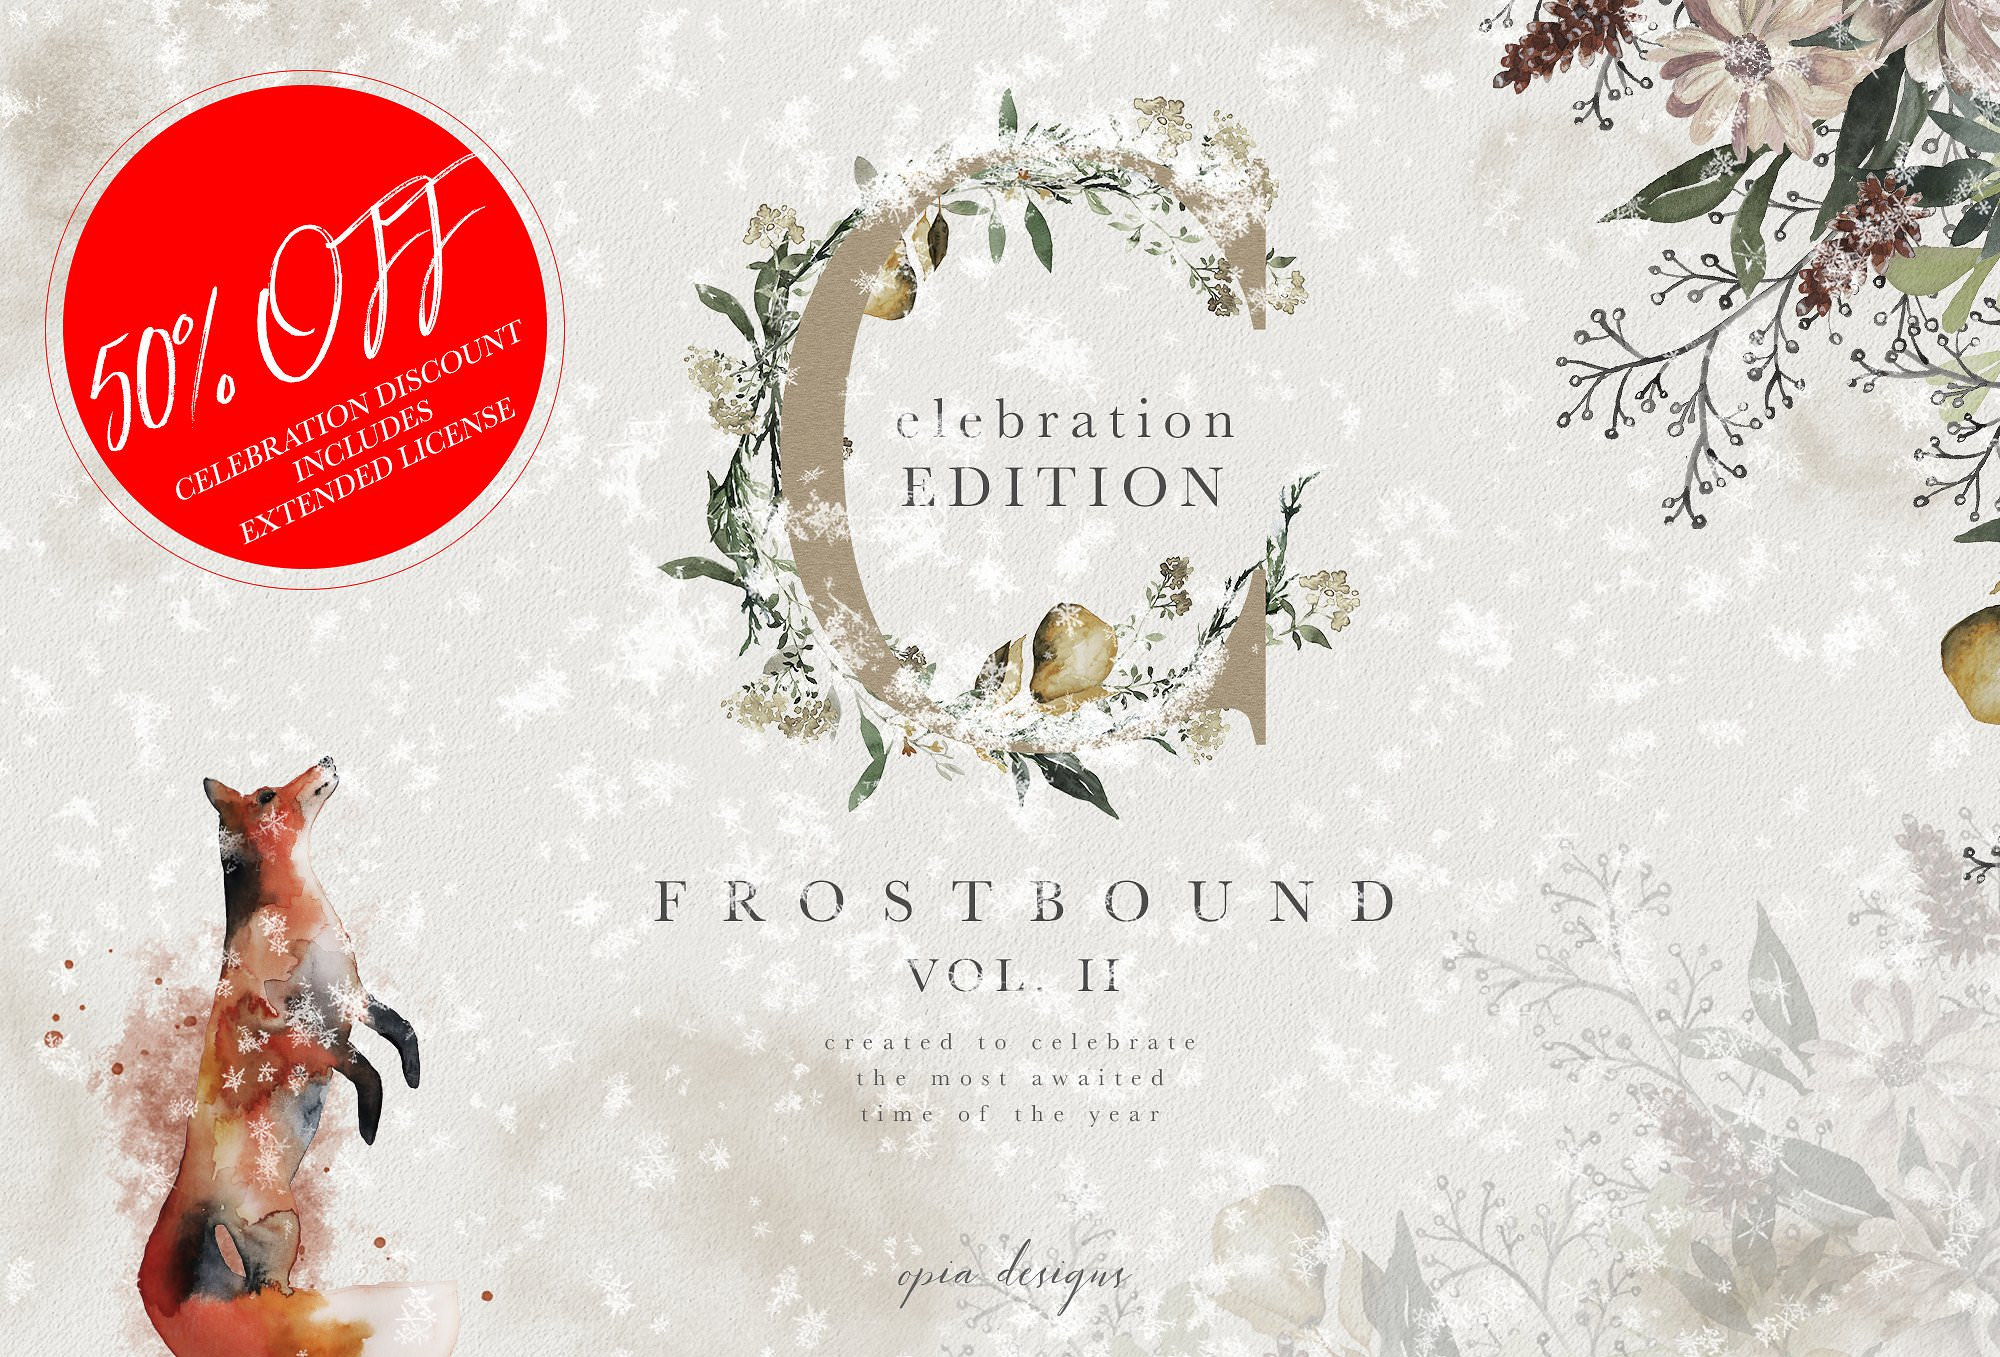 Exclusive festive graphics and font for Christmas projects.